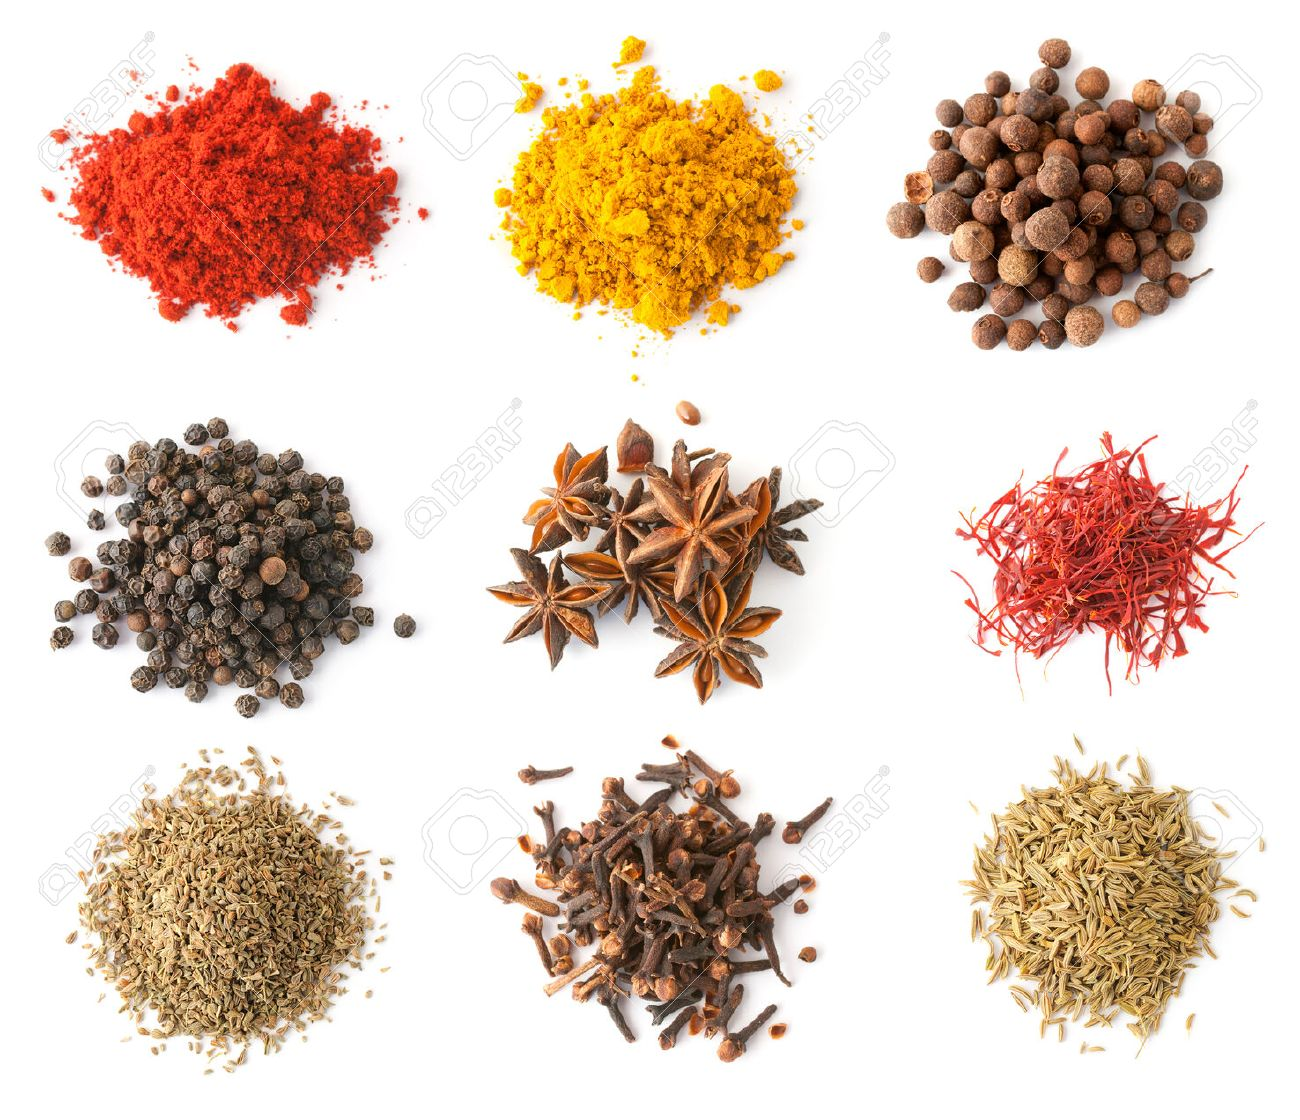 Set of spices (red and black pepper, allspice, saffron, curry, anise, cloves, cumin, coriander) isolated on white, top view - 36868479